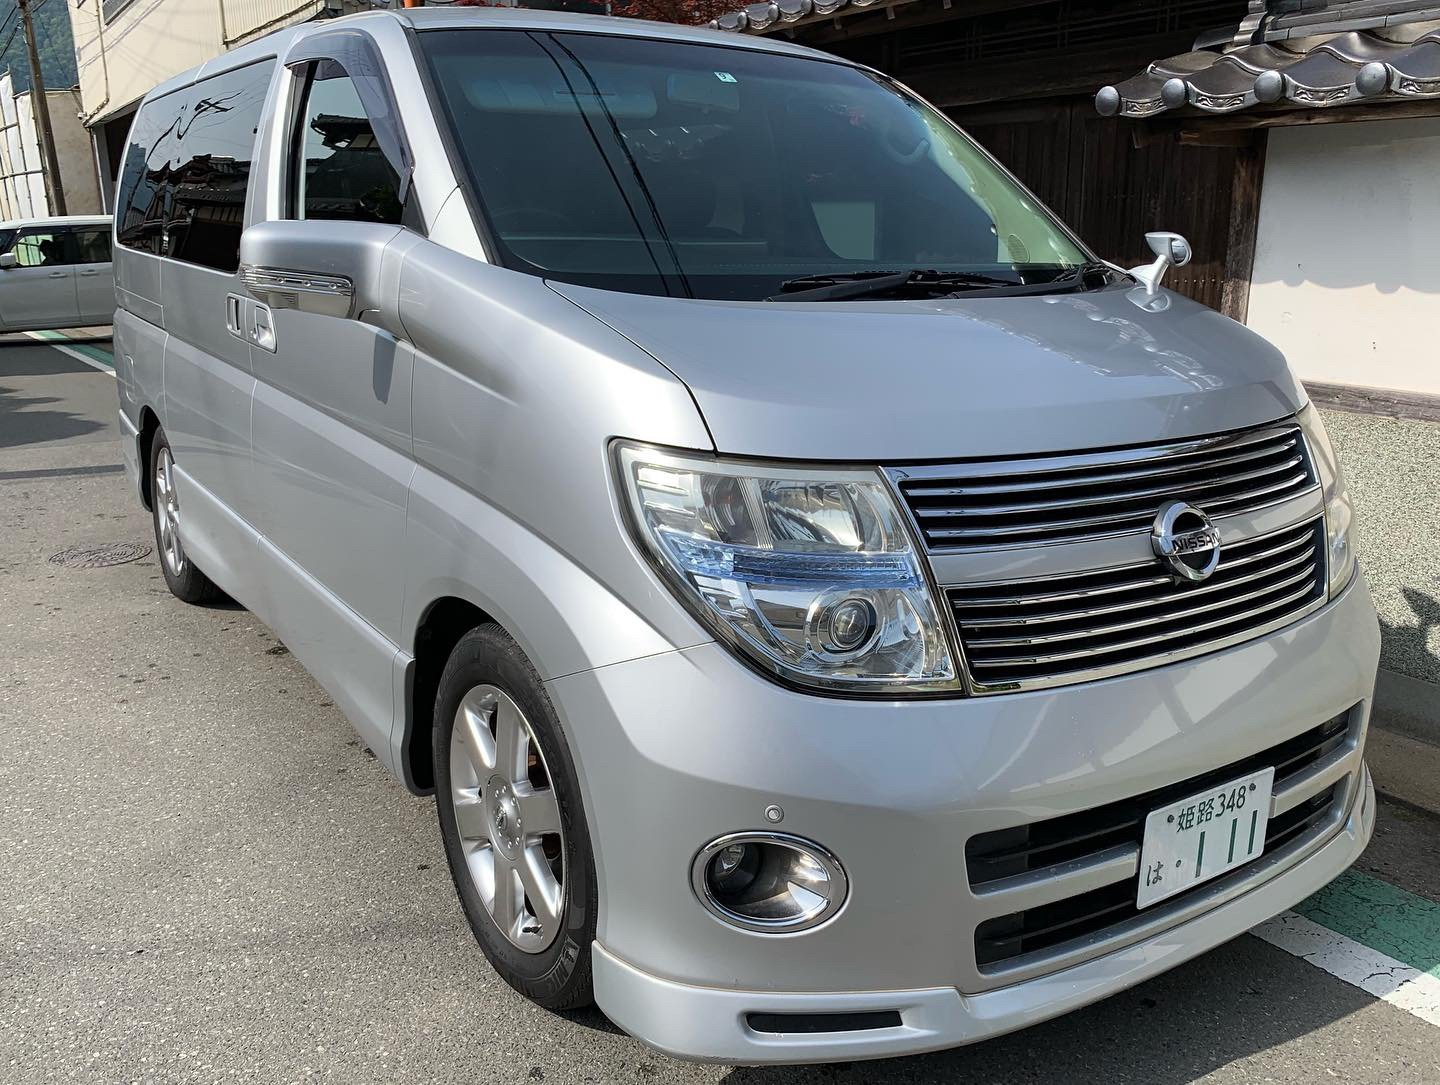 2008 Stunning Nissan Elgrand Highway Star Black Leather Edition SOLD (picture 1 of 6)